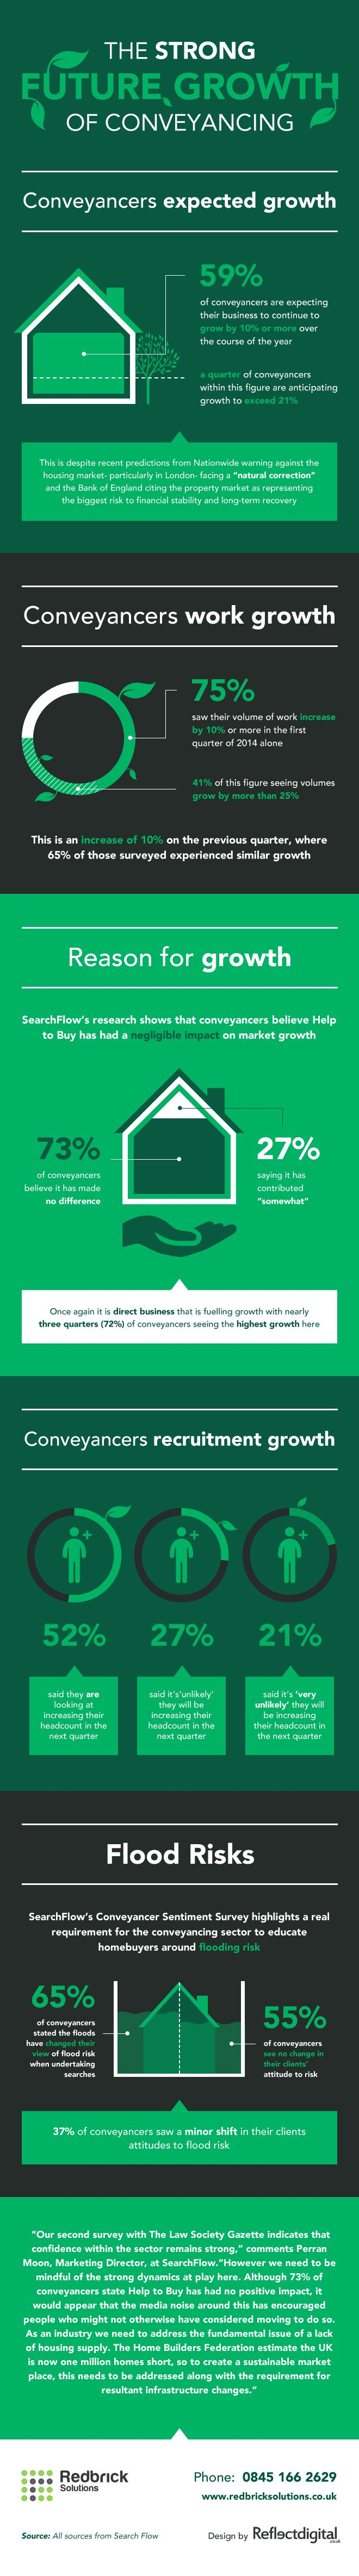 16 best conveyancing images on pinterest the property 30 day confidence in the conveyancing market is strong solutioingenieria Images